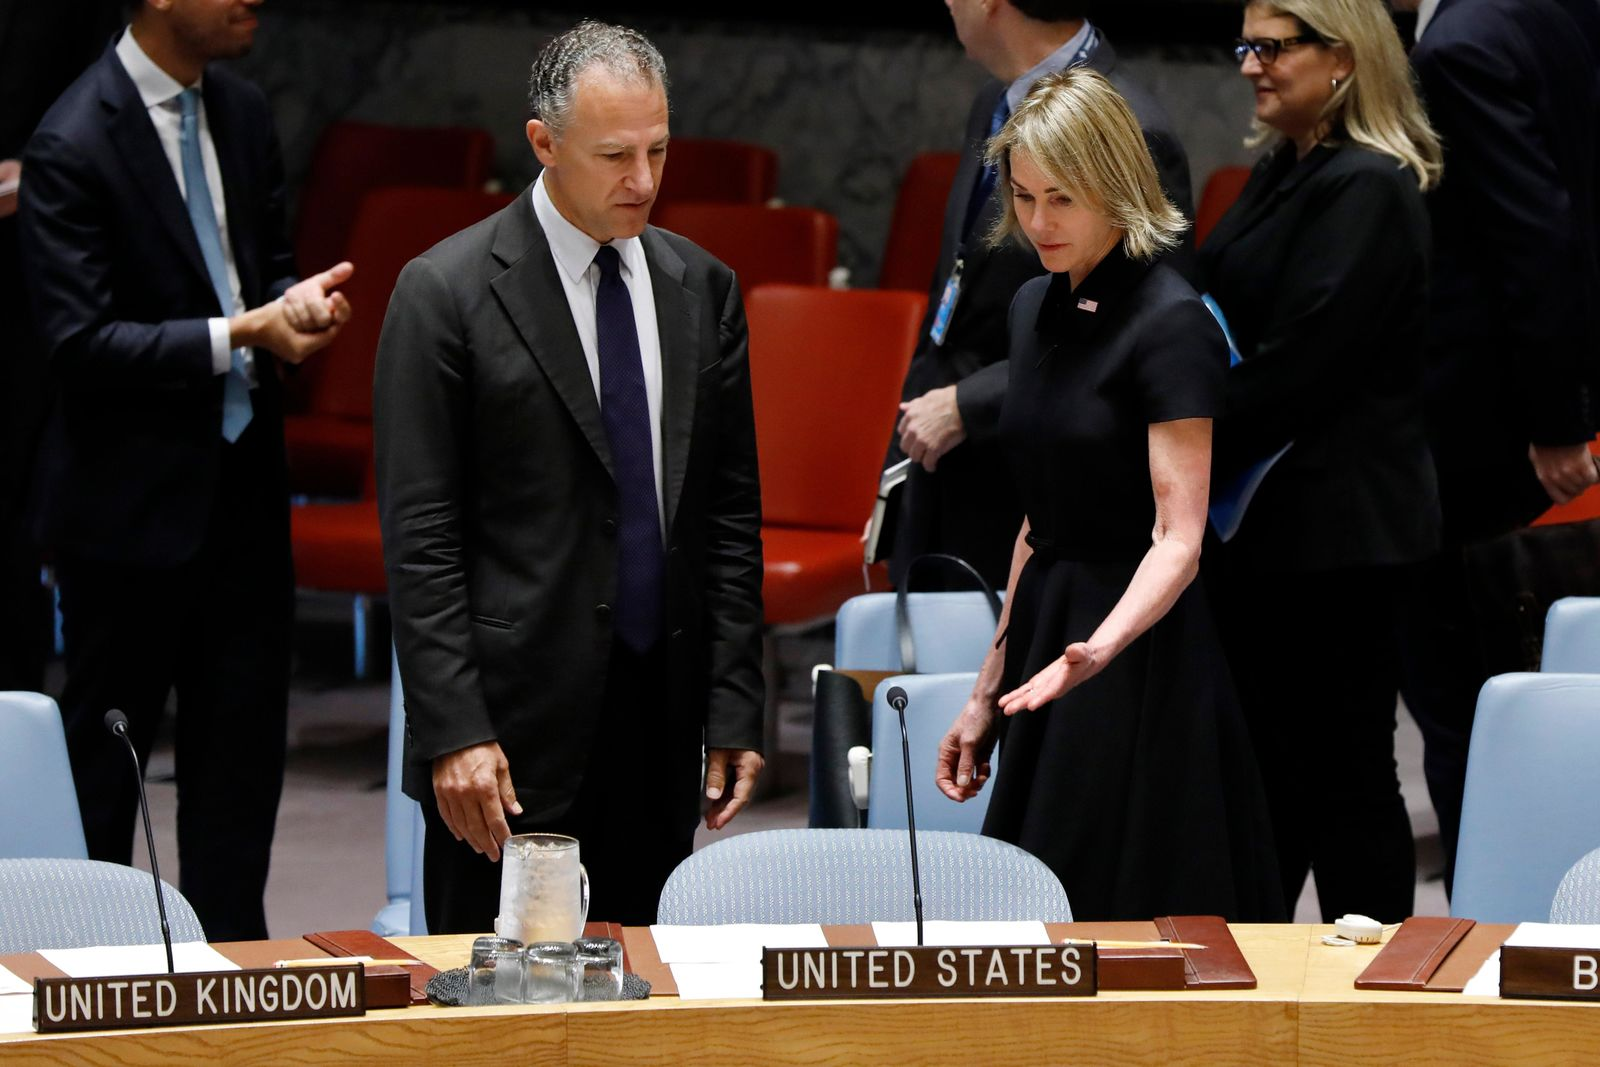 New U.S. Ambassador Kelly Craft talks with United States Deputy Representative to the United Nations Jonathan Cohen as she attends her first Security Council meeting, at United Nations headquarters, Thursday, Sept. 12, 2019. (AP Photo/Richard Drew)